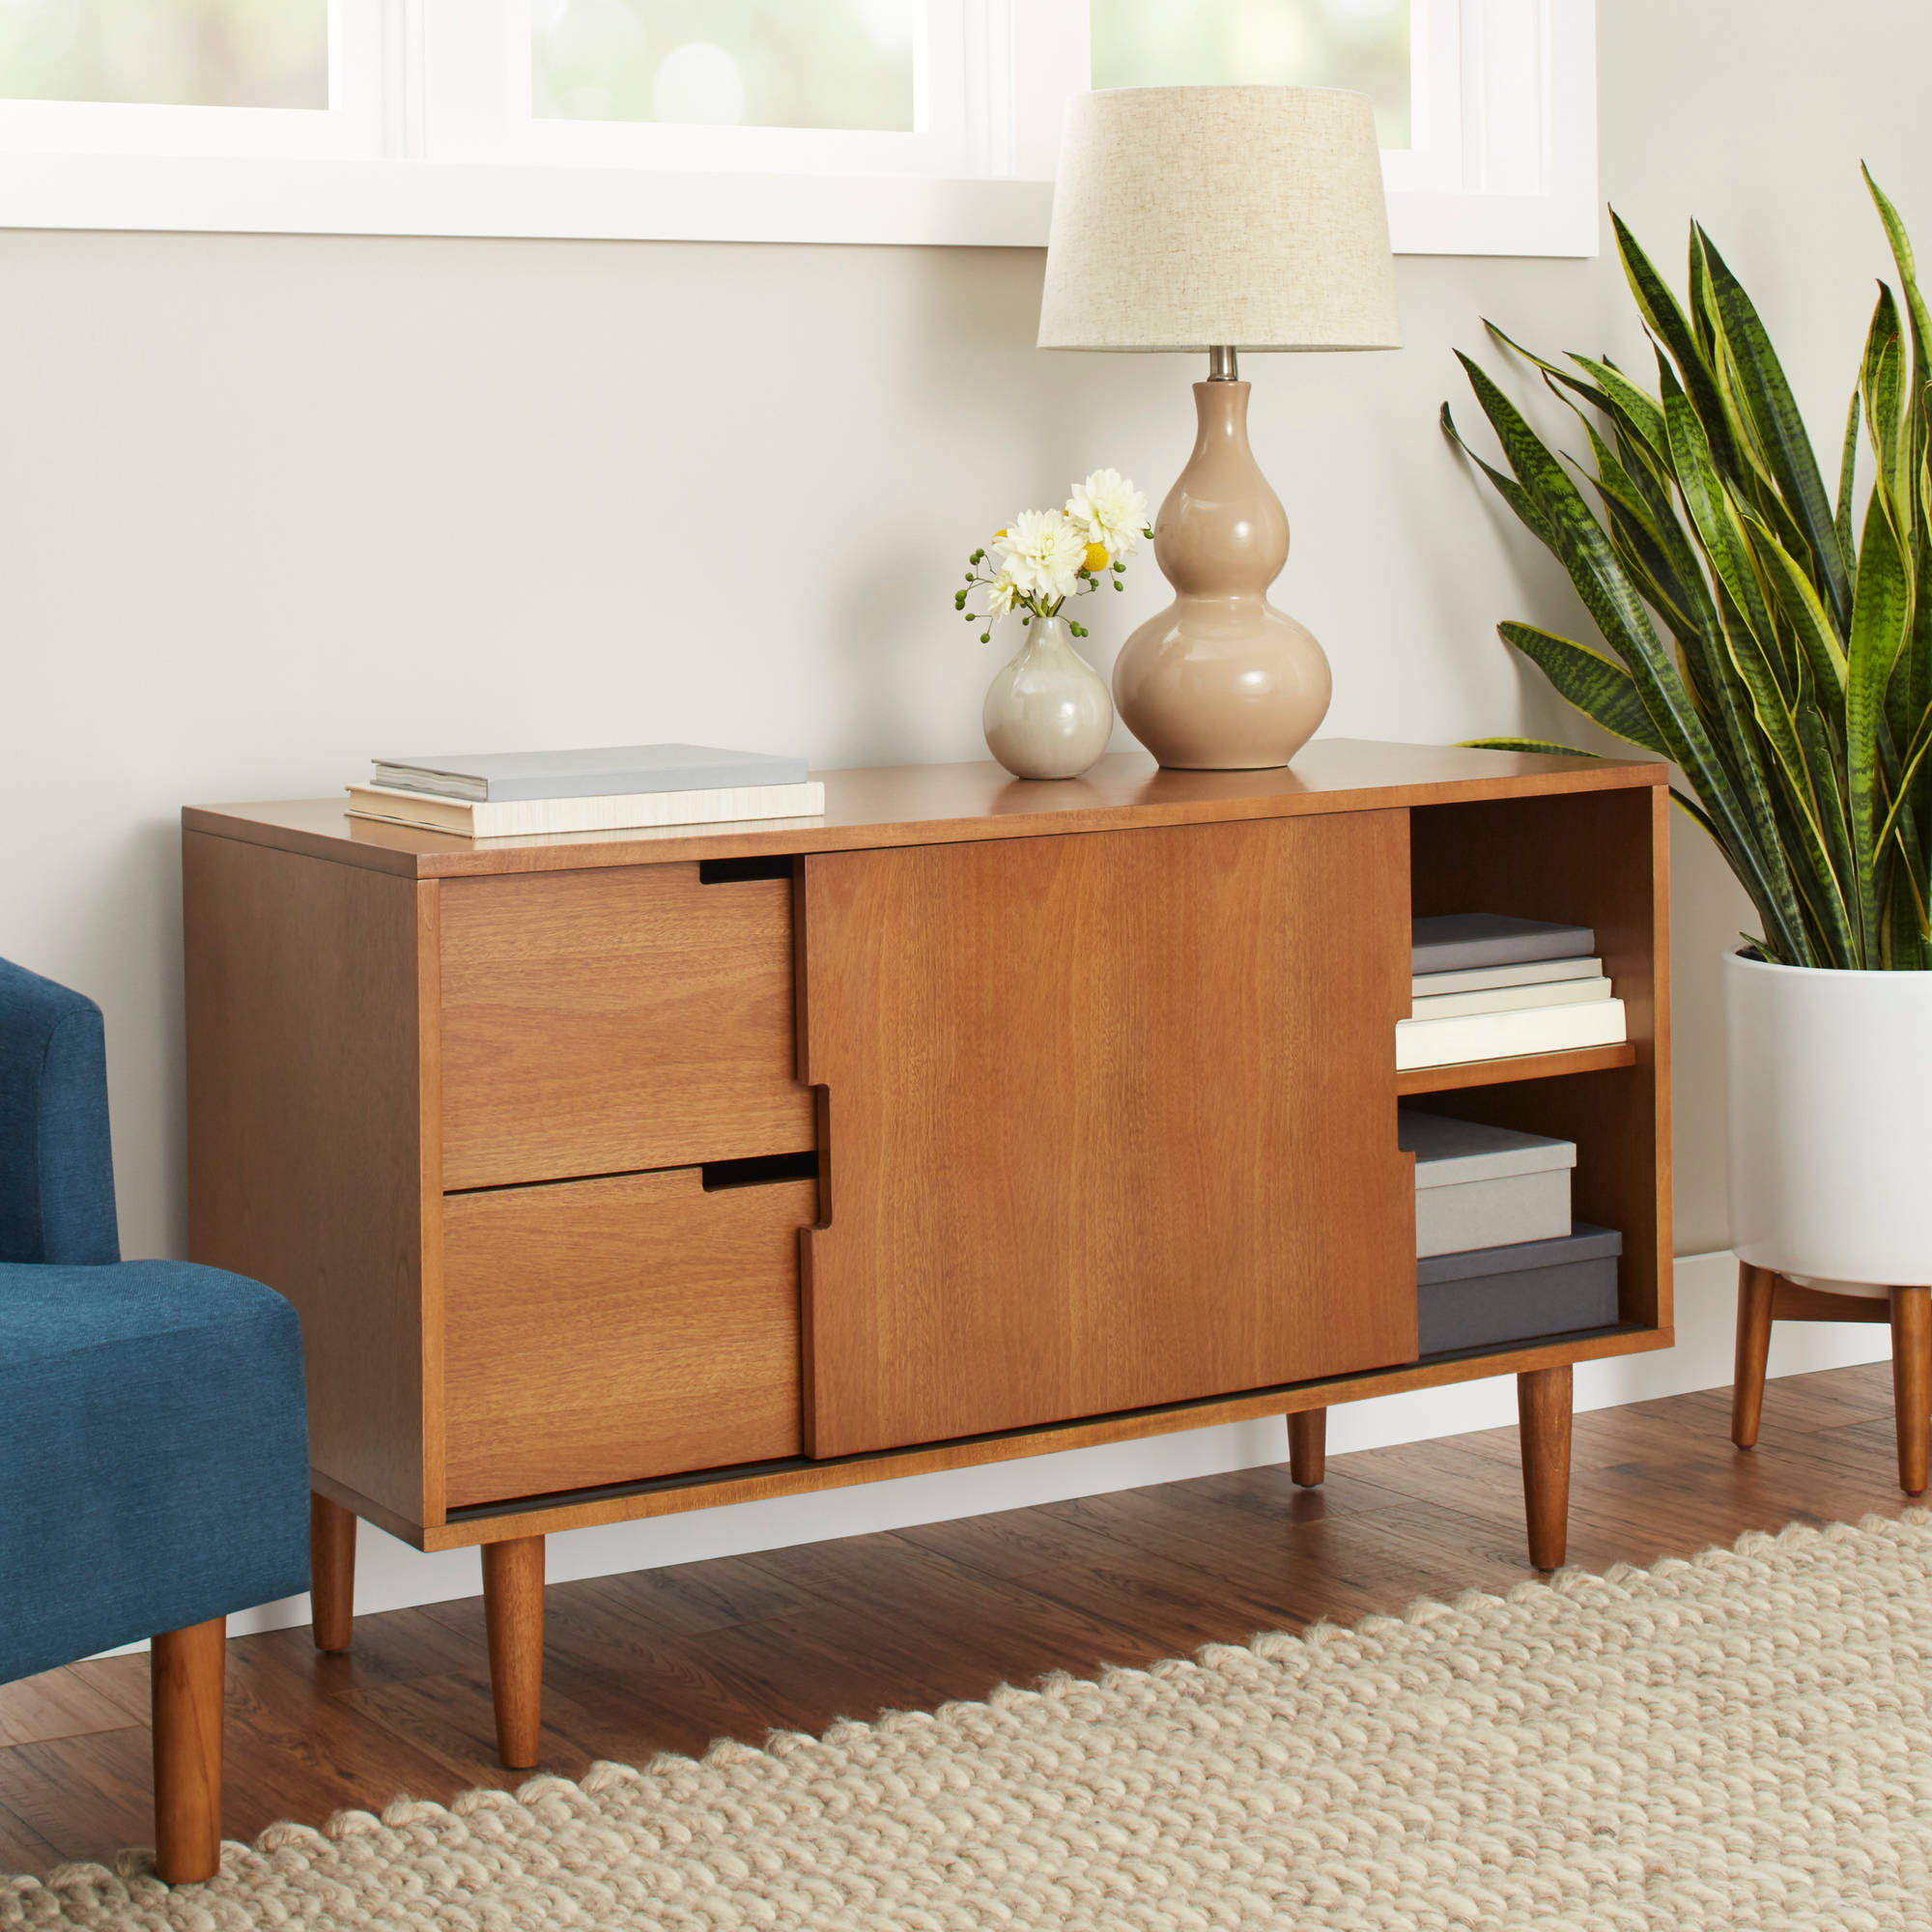 Better Homes And Gardens Flynn Mid Century Modern Credenza, Pecan Intended For Mid Century 3 Cabinet Buffets (View 6 of 20)